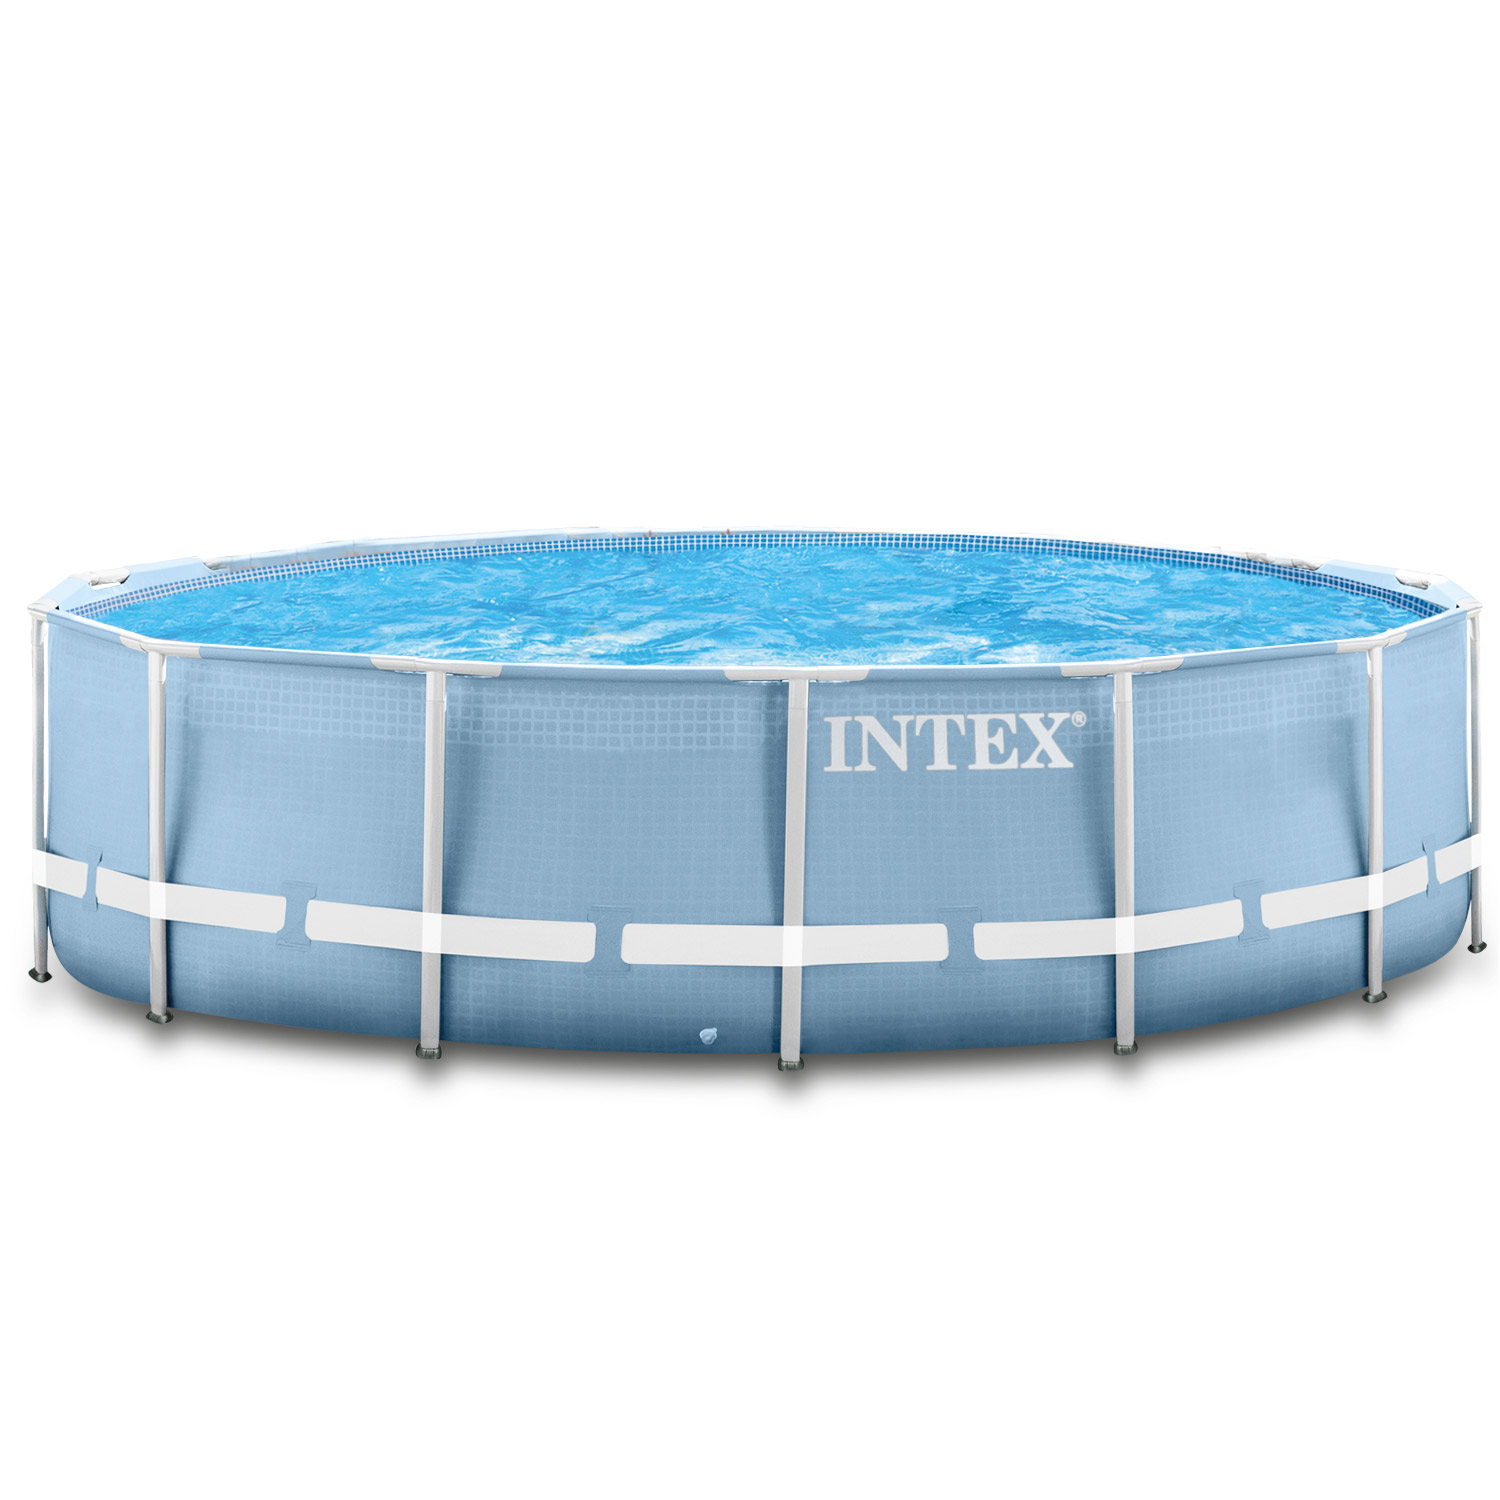 intex 457x122 komplettset swimming pool schwimmbad frame metal stahlwand ebay. Black Bedroom Furniture Sets. Home Design Ideas